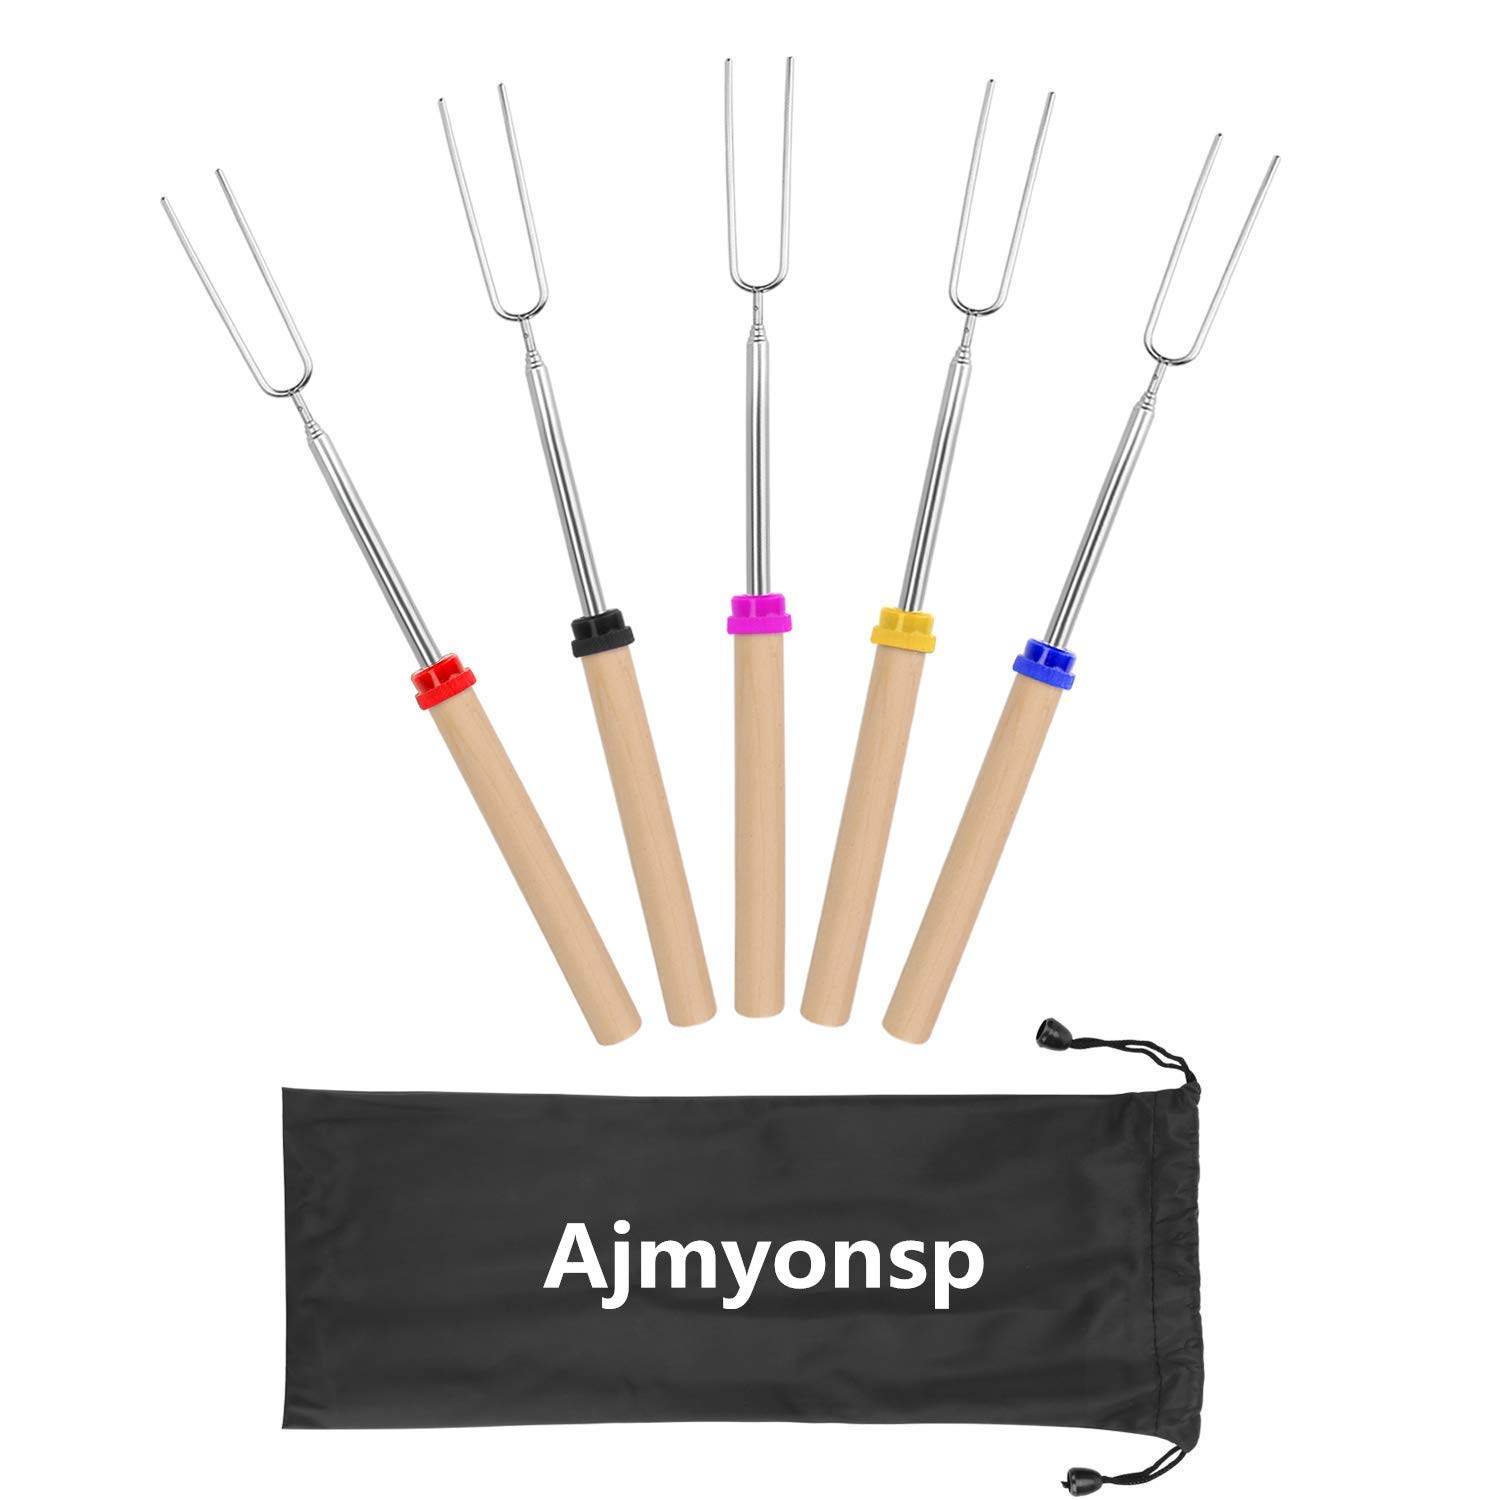 Ajmyonsp Marshmallow Roasting Sticks with Wooden Handle Extendable Forks Set of 5 Pcs Telescoping Smores Skewers for Campfire Firepit and Sausage BBQ, 32 Inch